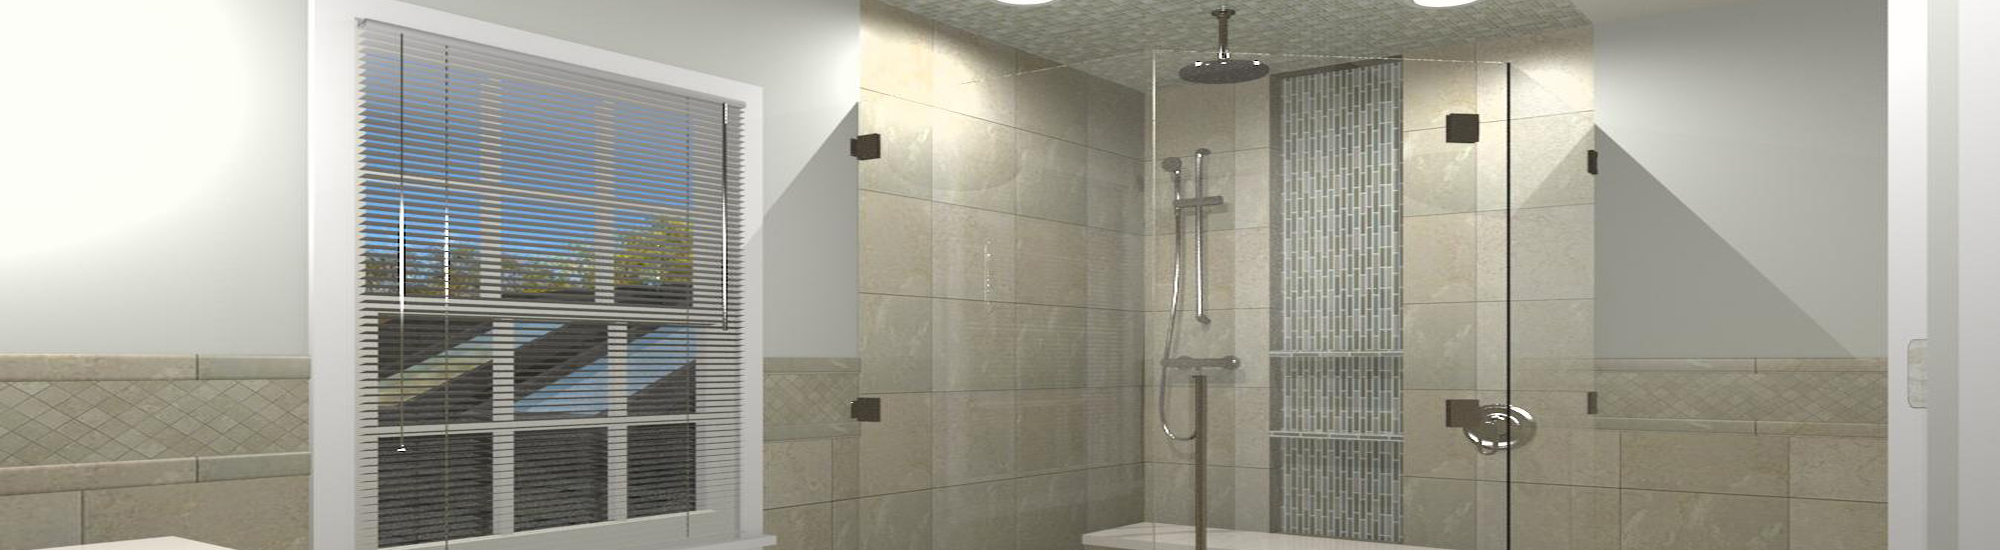 BathroomCAD1-Design Build Pros